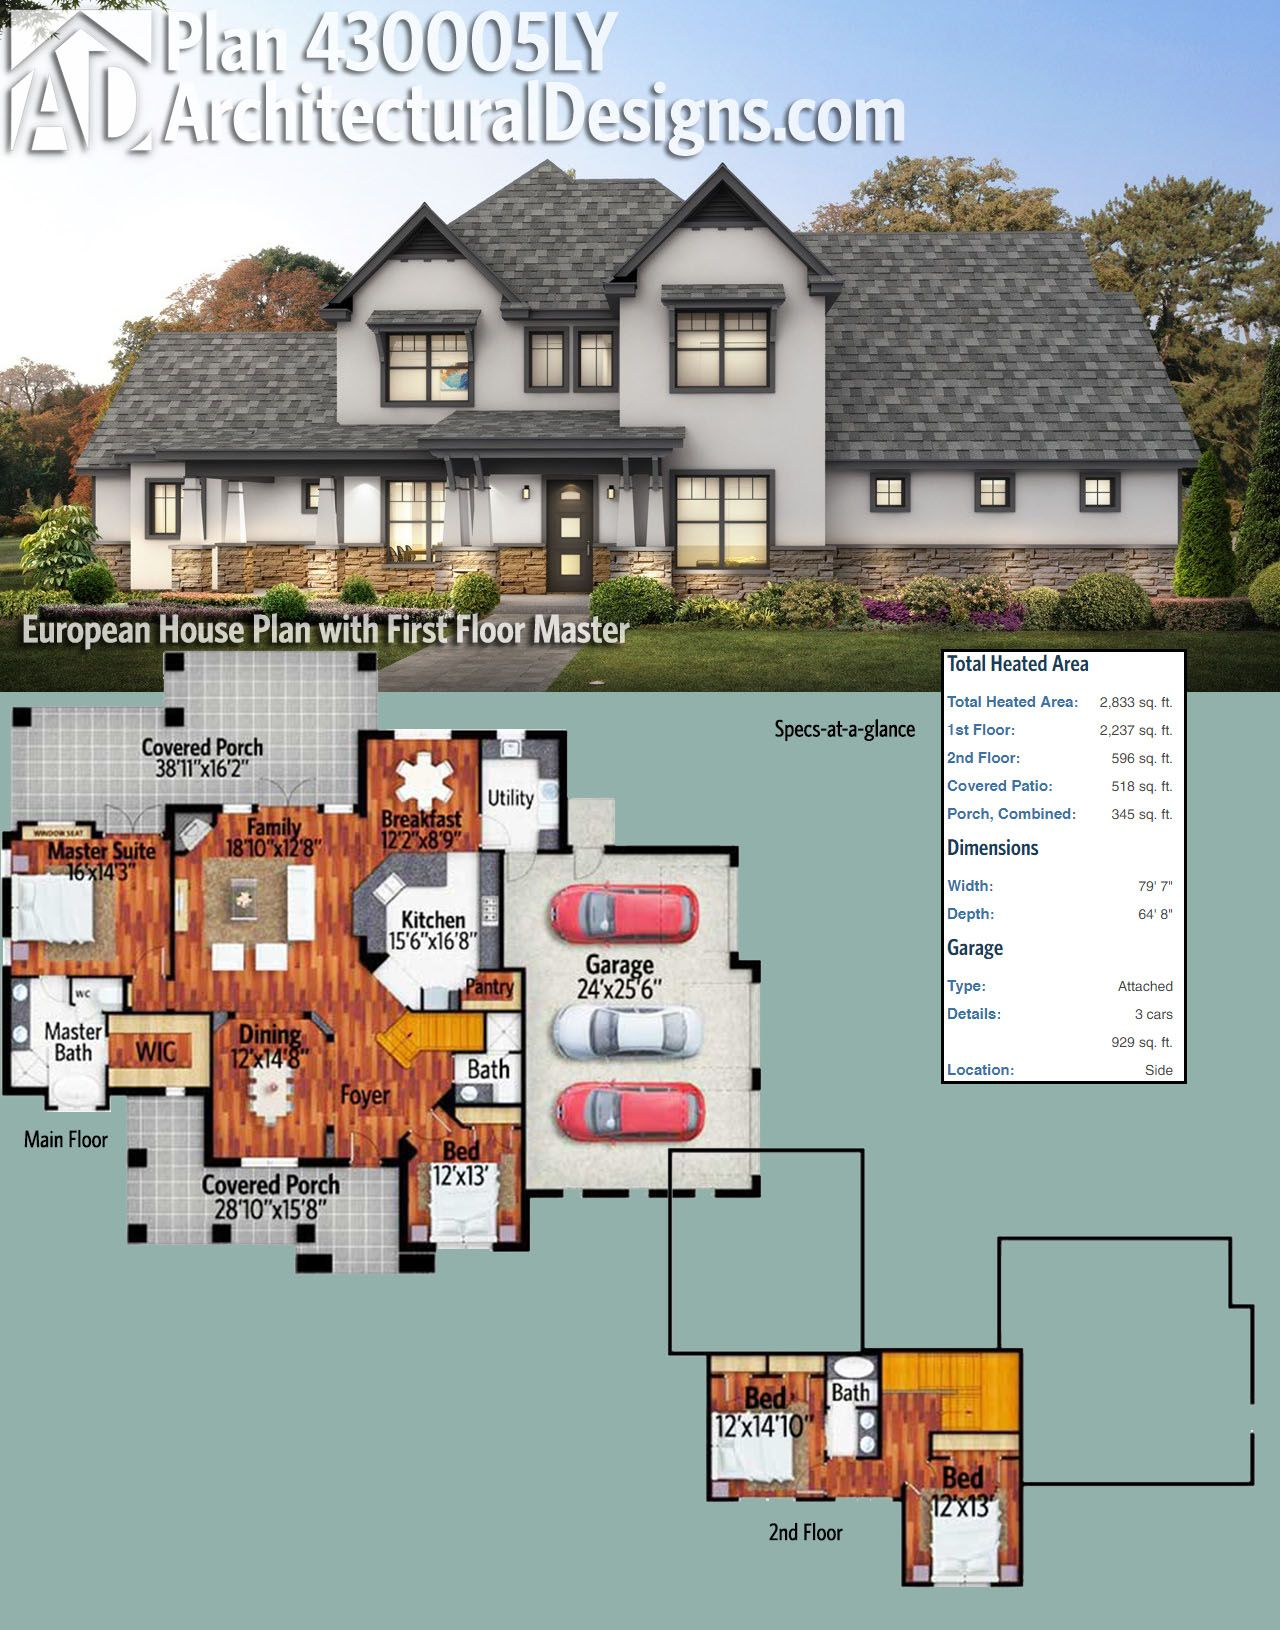 Plan 430005ly european house plan with first floor master for European house plans with photos